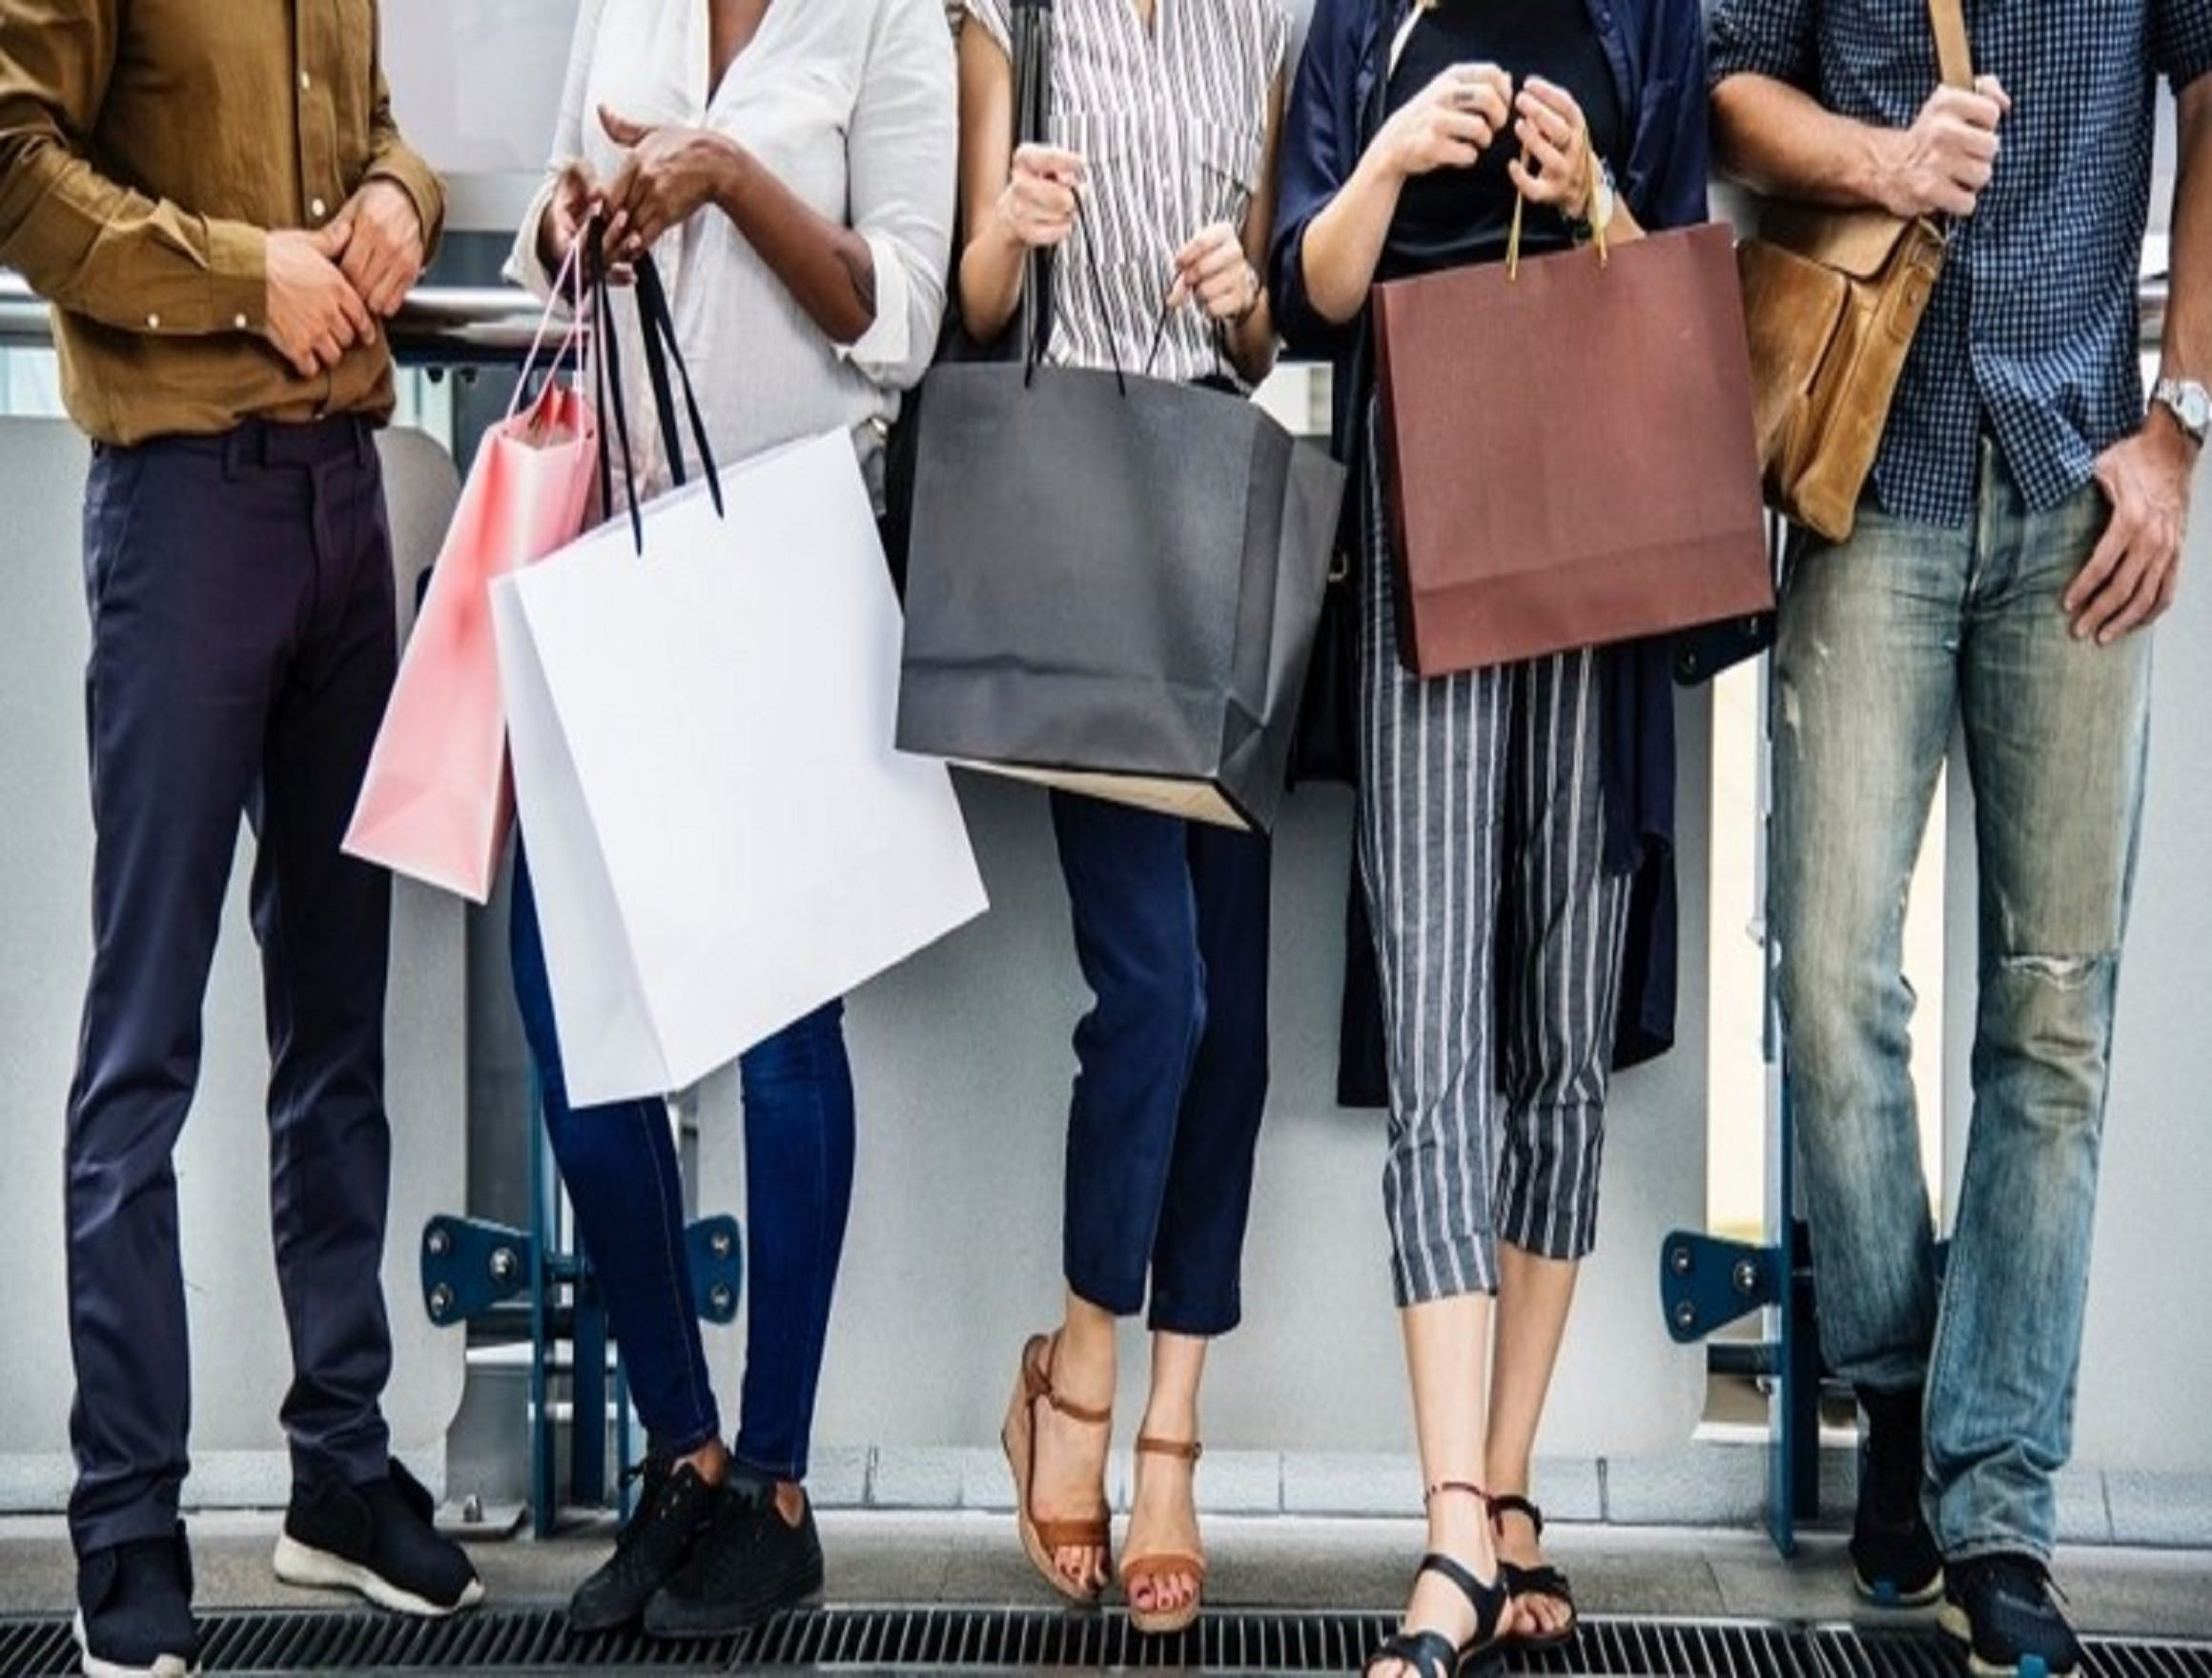 Gen X – don't overlook the 'forgotten generation' of shoppers